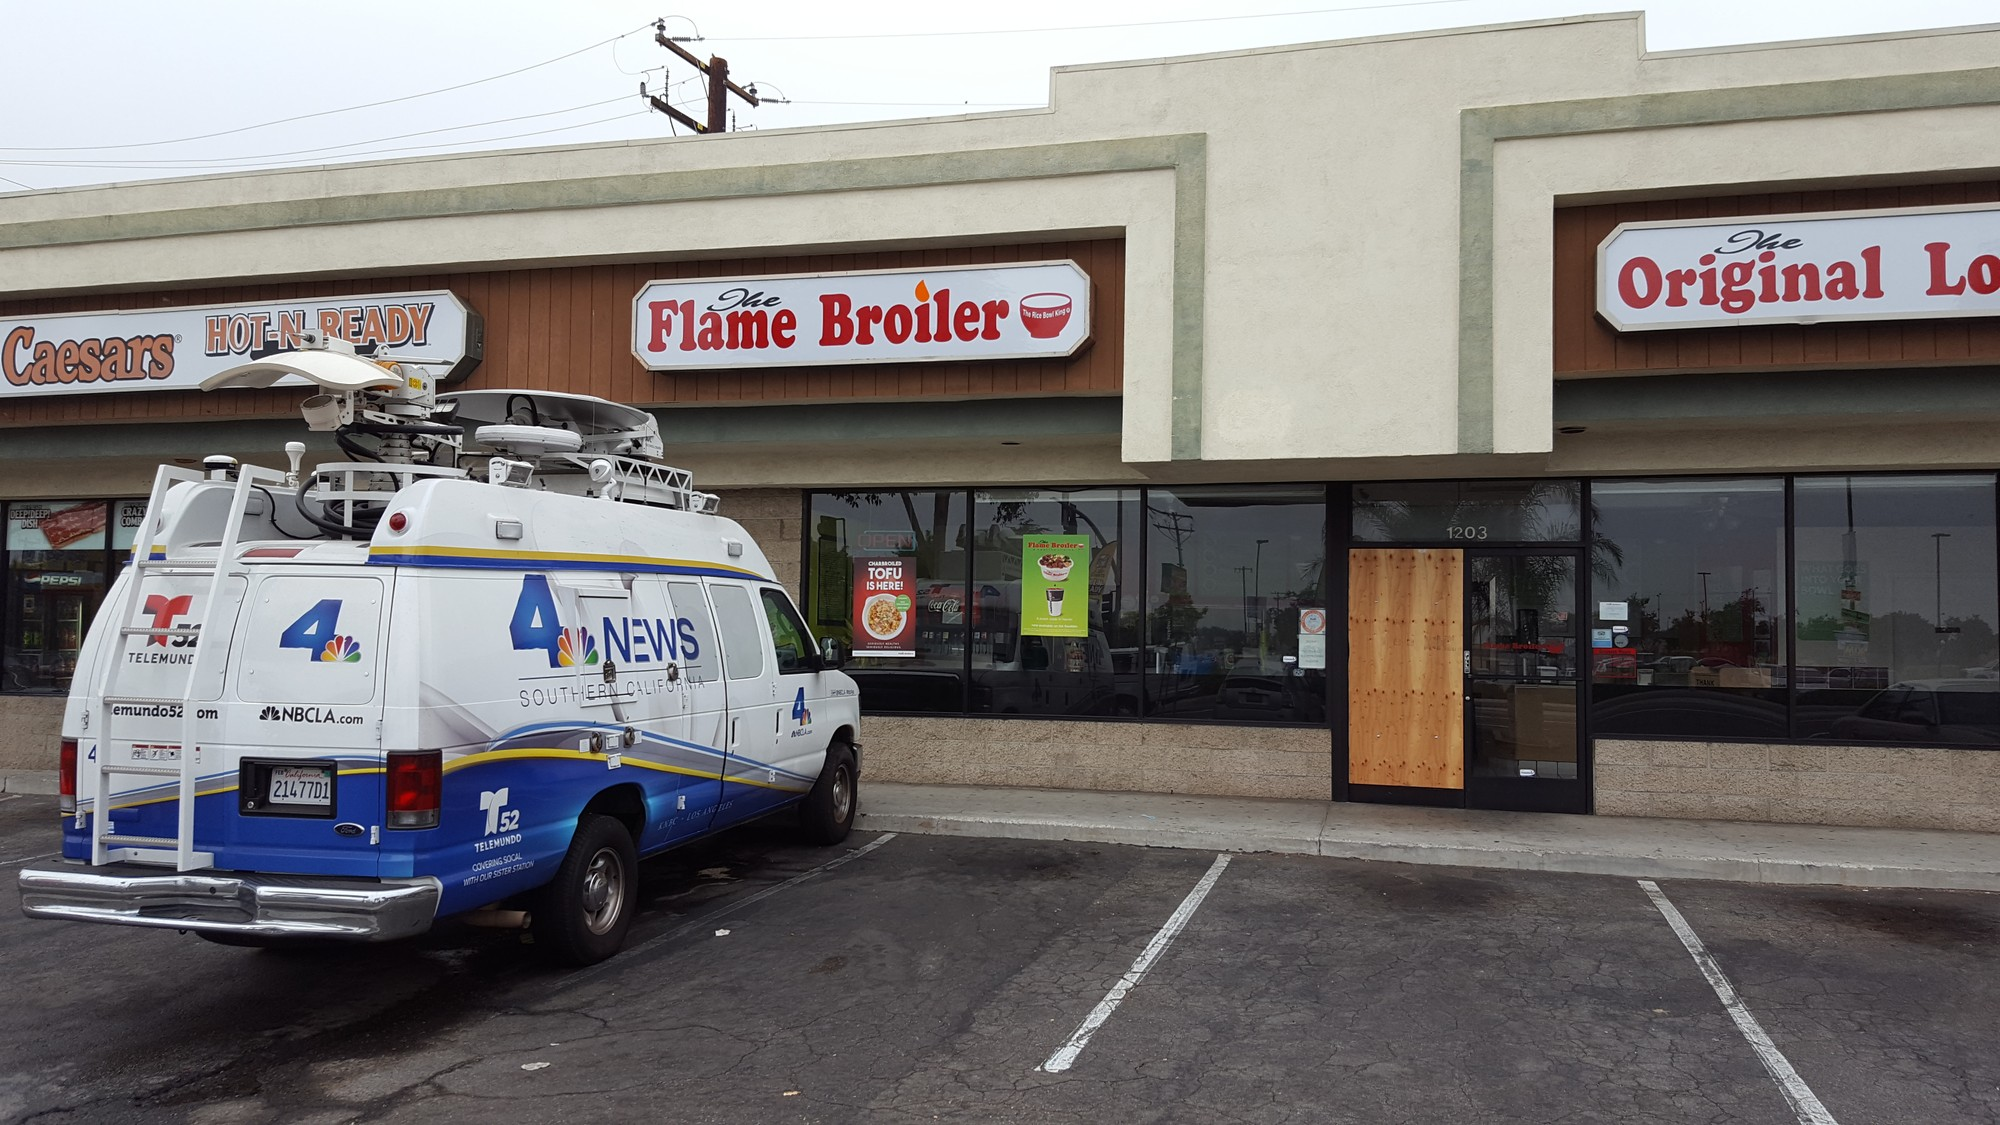 Flame Broiler – Rice Bowl Restaurant with locations in California, Arizona, Nevada, Florida, Oklahoma, and Texas.